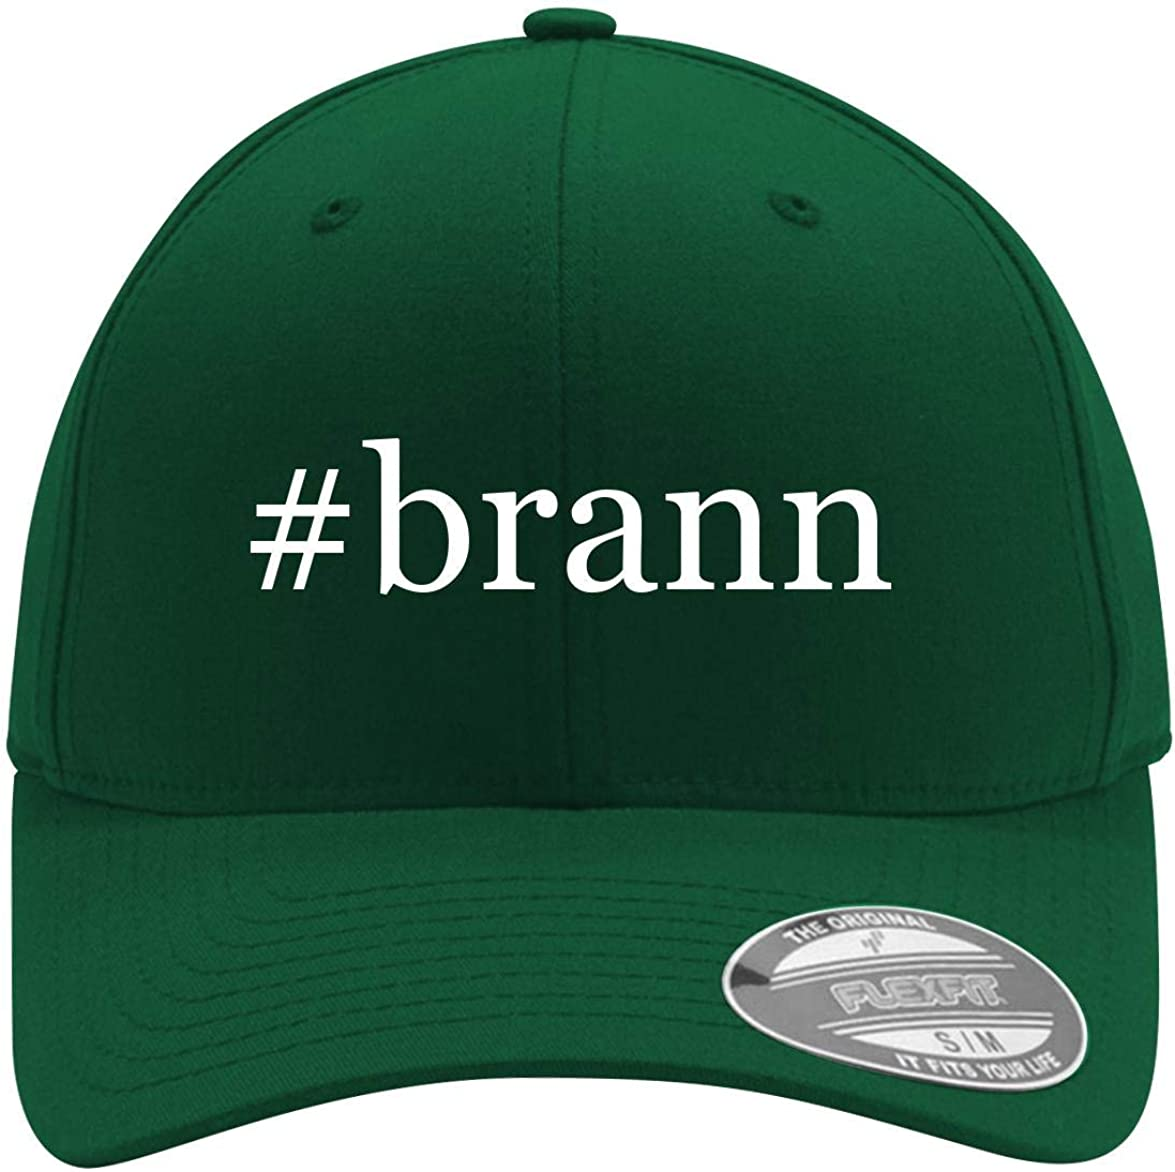 #brann - Adult Men's Hashtag Flexfit Baseball Hat Cap